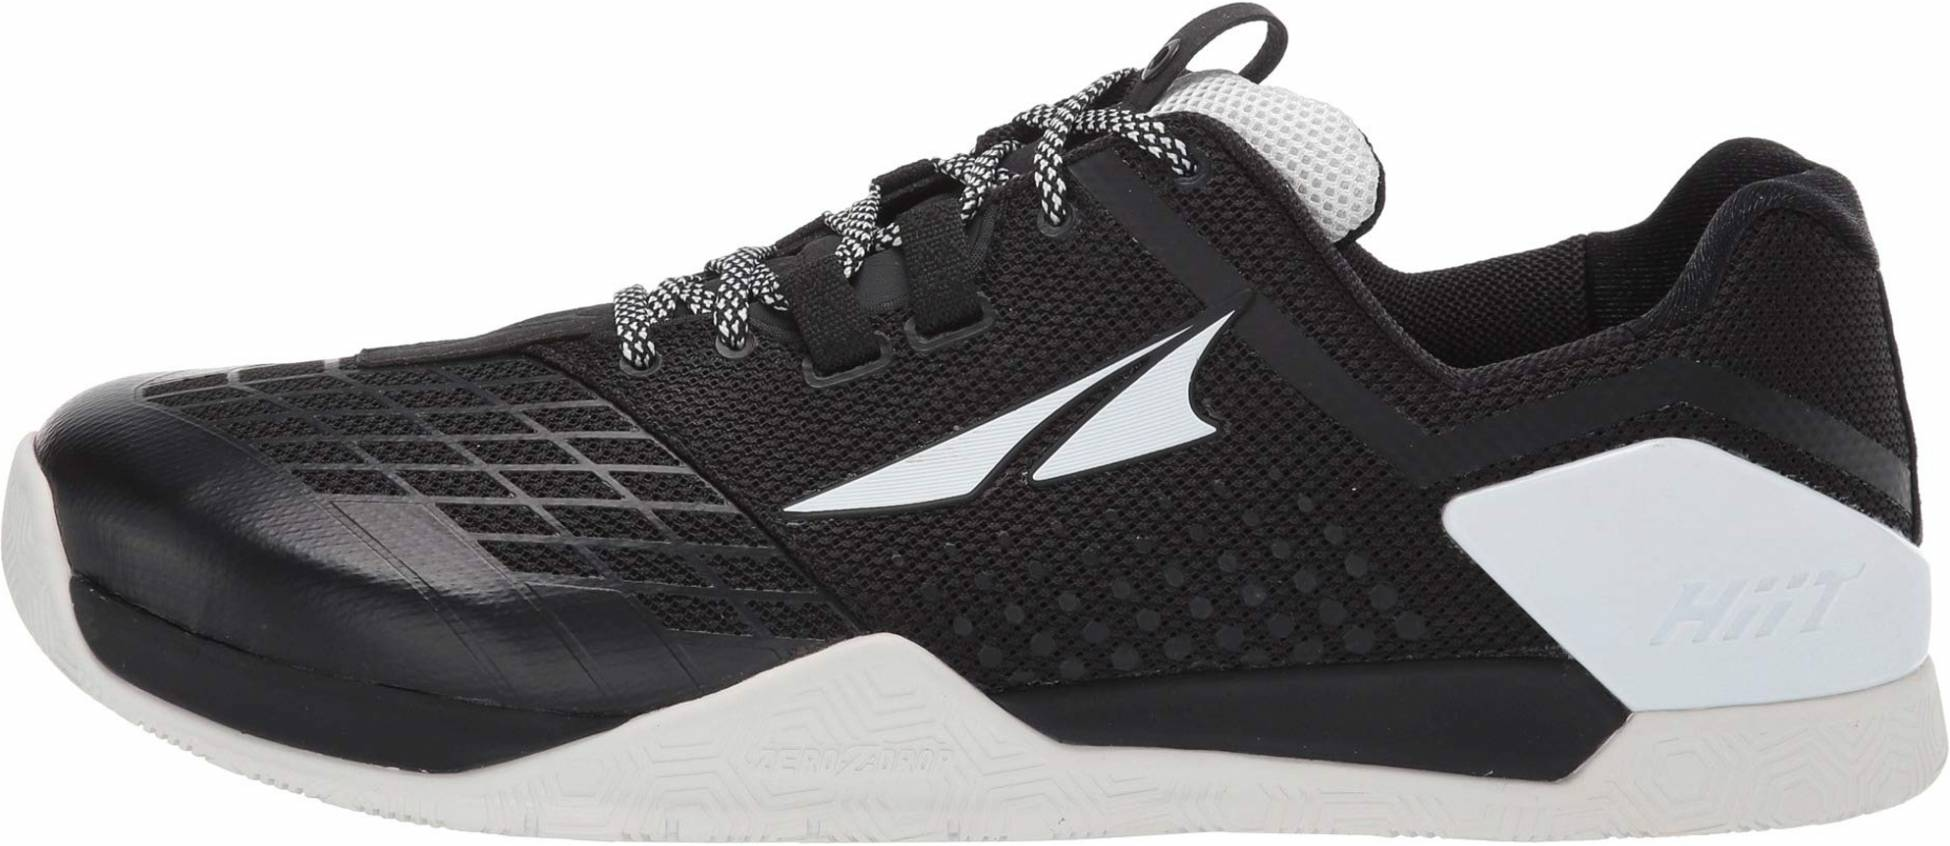 Only $77 + Review of Altra HIIT XT 2